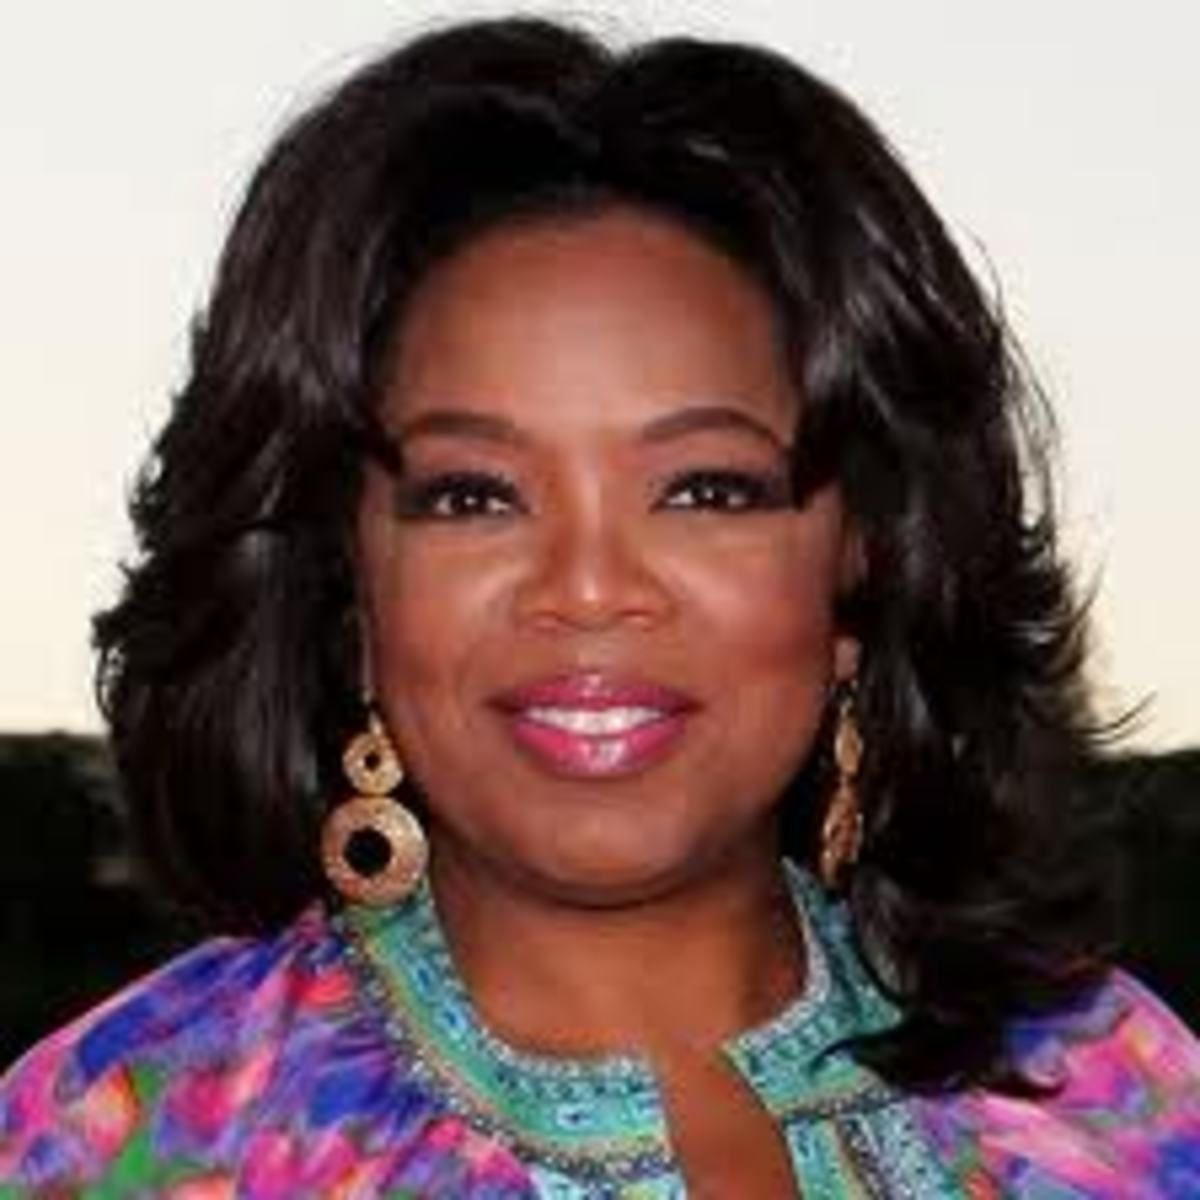 Oprah Winfrey was told by members of her family to settle,not to dream big as such dreams were beyond a poor girl's reach. However, she IGNORED them, becoming a media mogul.